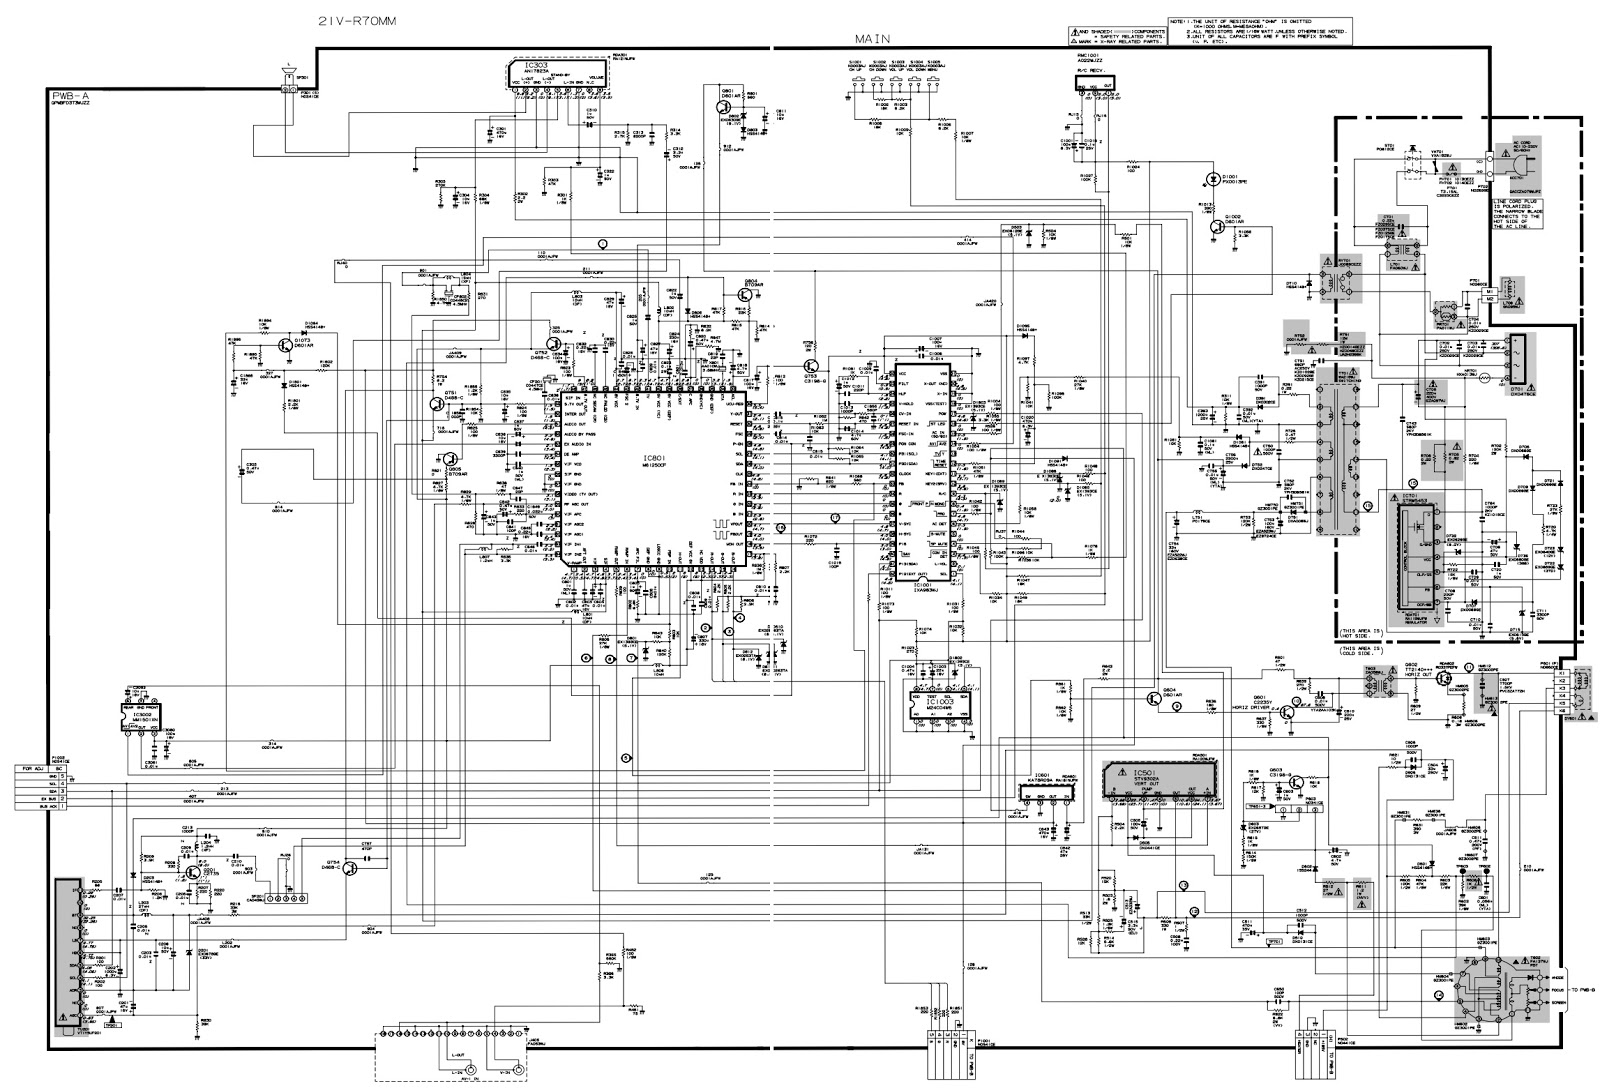 Sharp 21vr70mm Service Mode Adjustments Schematic Colour Vco Circuit Diagram Self Adjustment H 1 When There Is Key Input For Item Performed